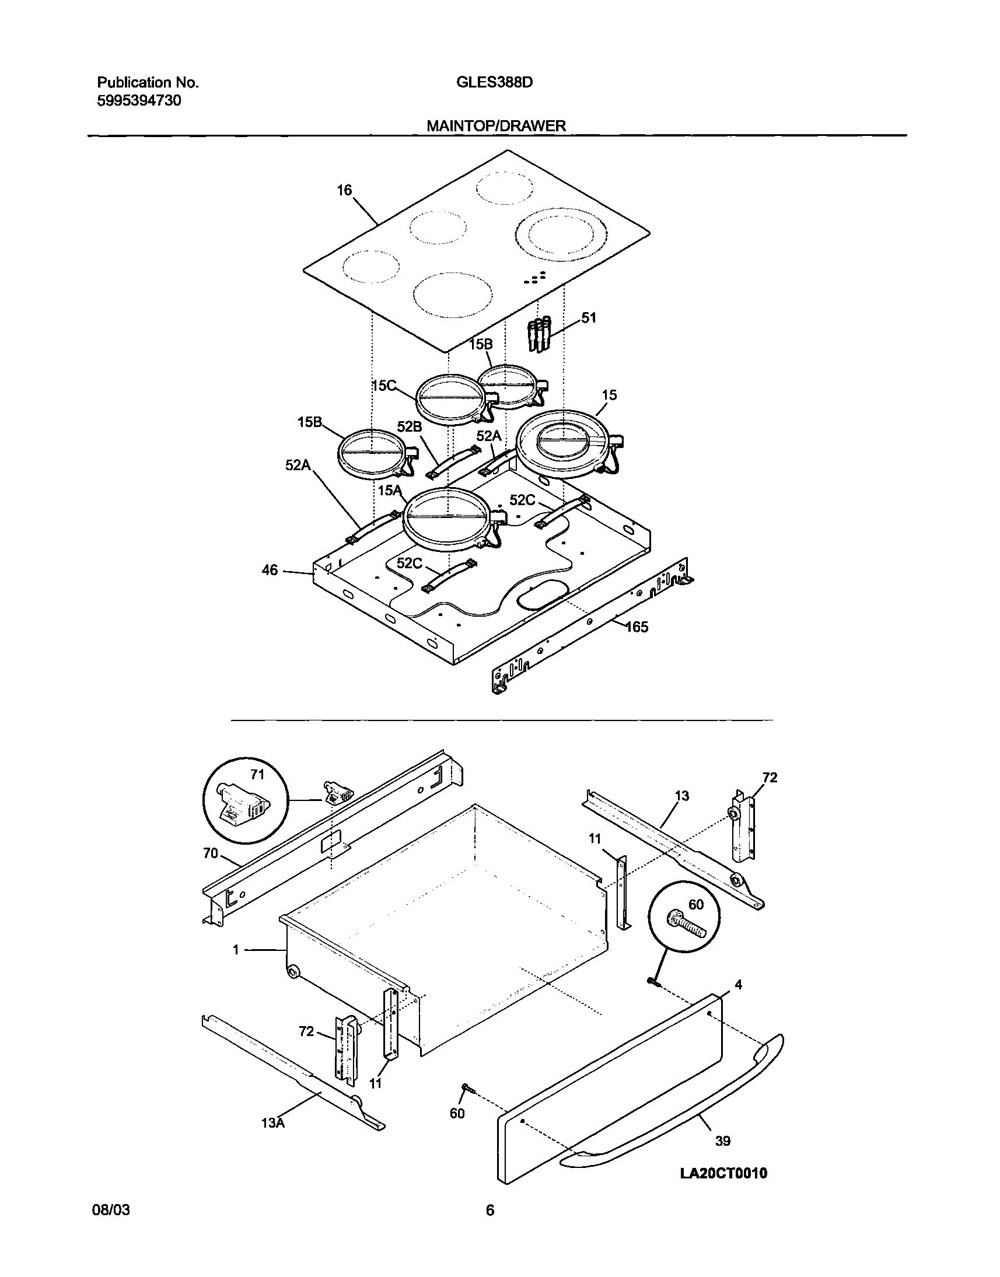 Gles388dba Frigidaire Company Appliance Parts Backguard 05body 07top Drawer 09door 01cover 10wiring Diagram